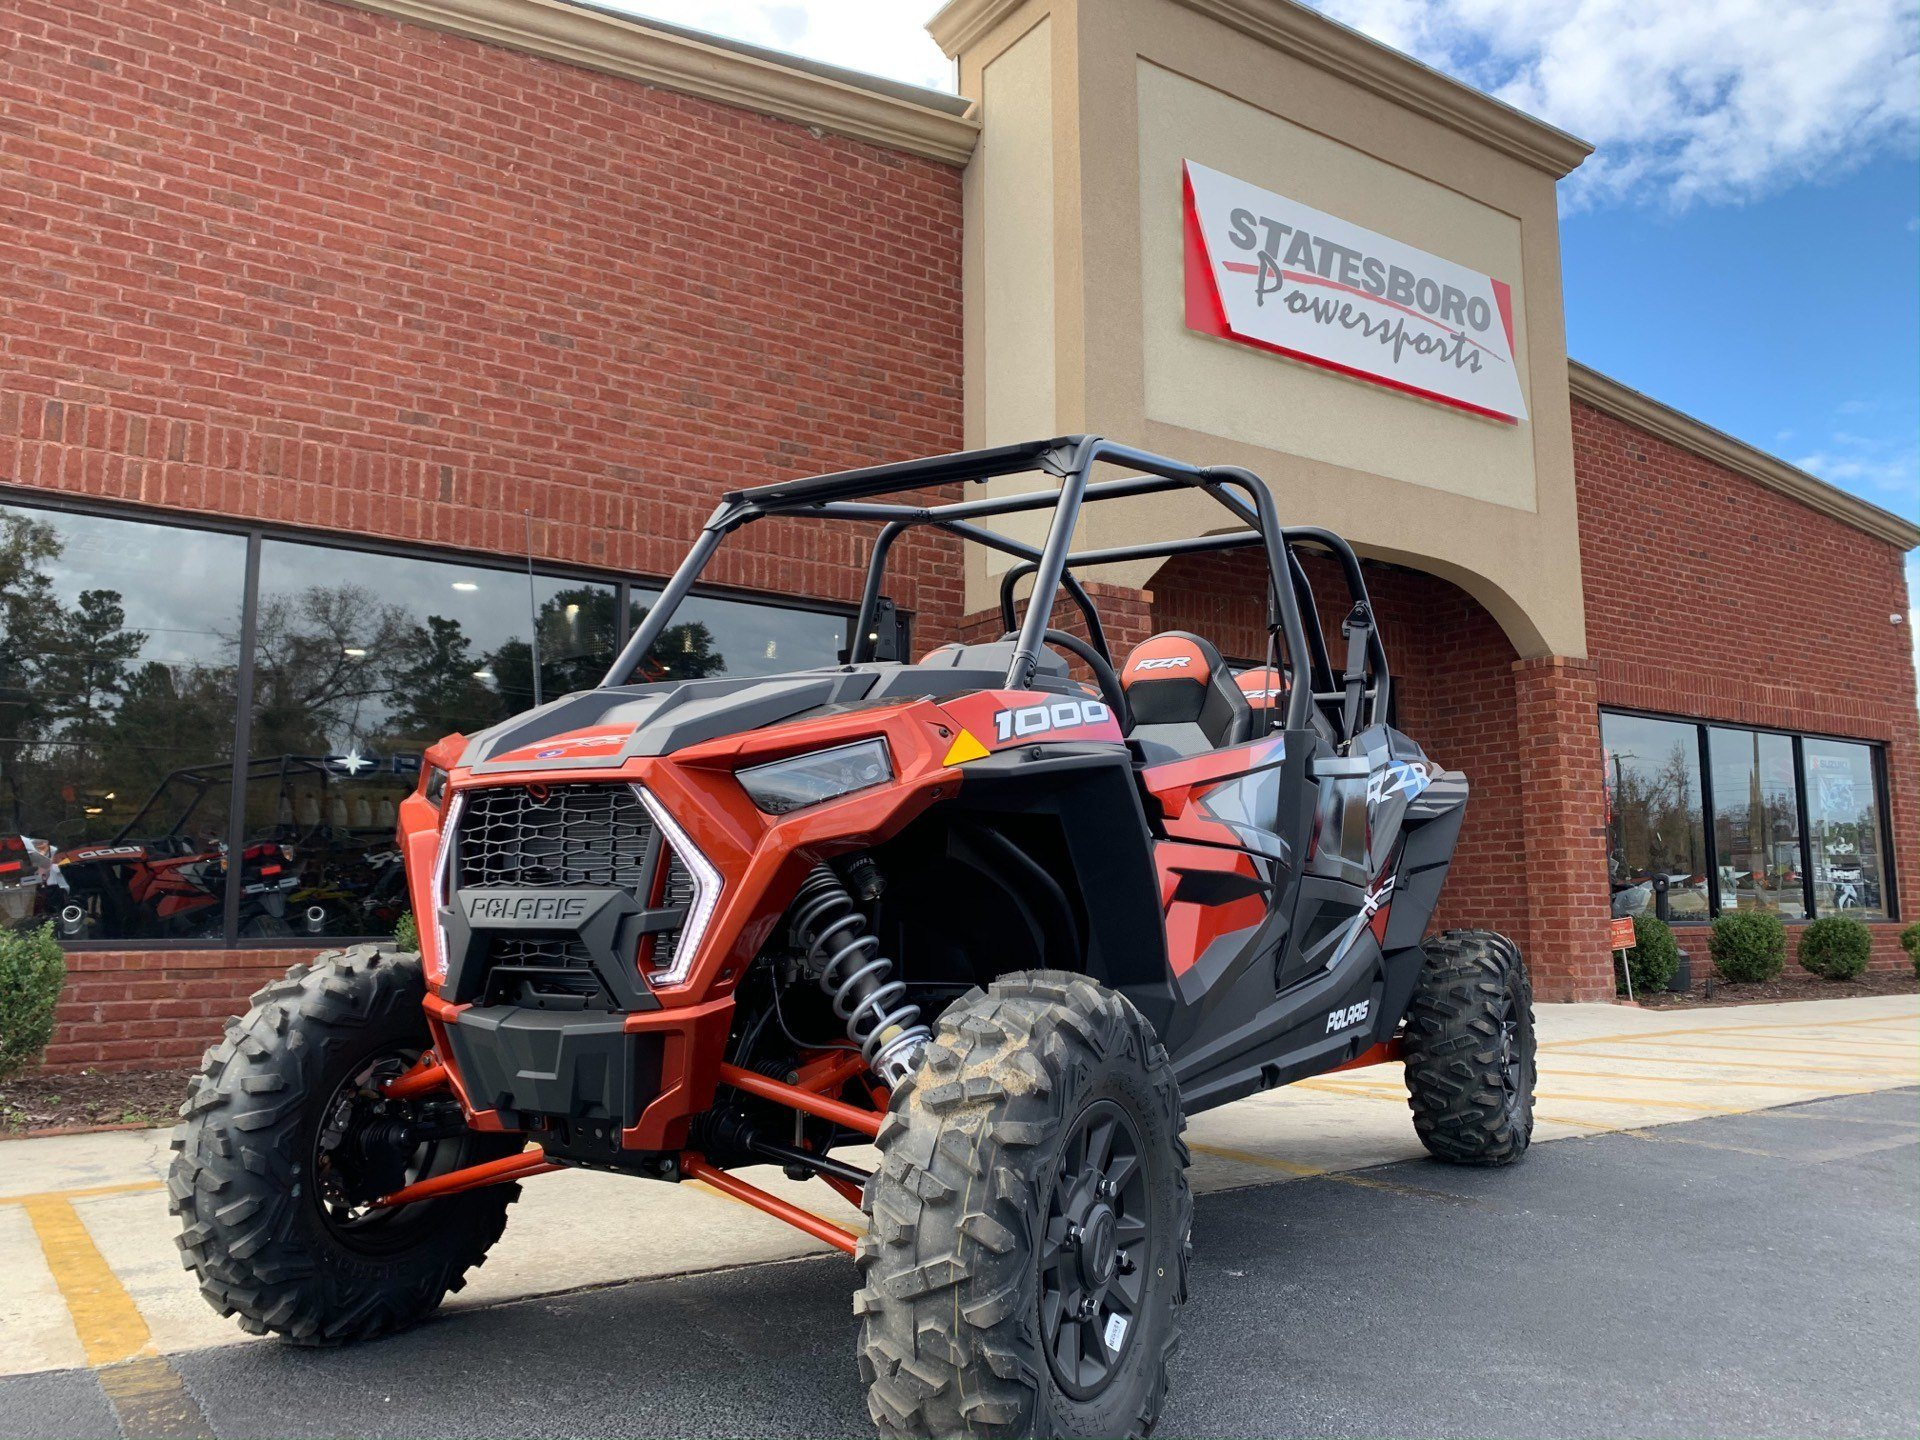 2020 Polaris RZR XP 4 1000 Premium in Statesboro, Georgia - Photo 1